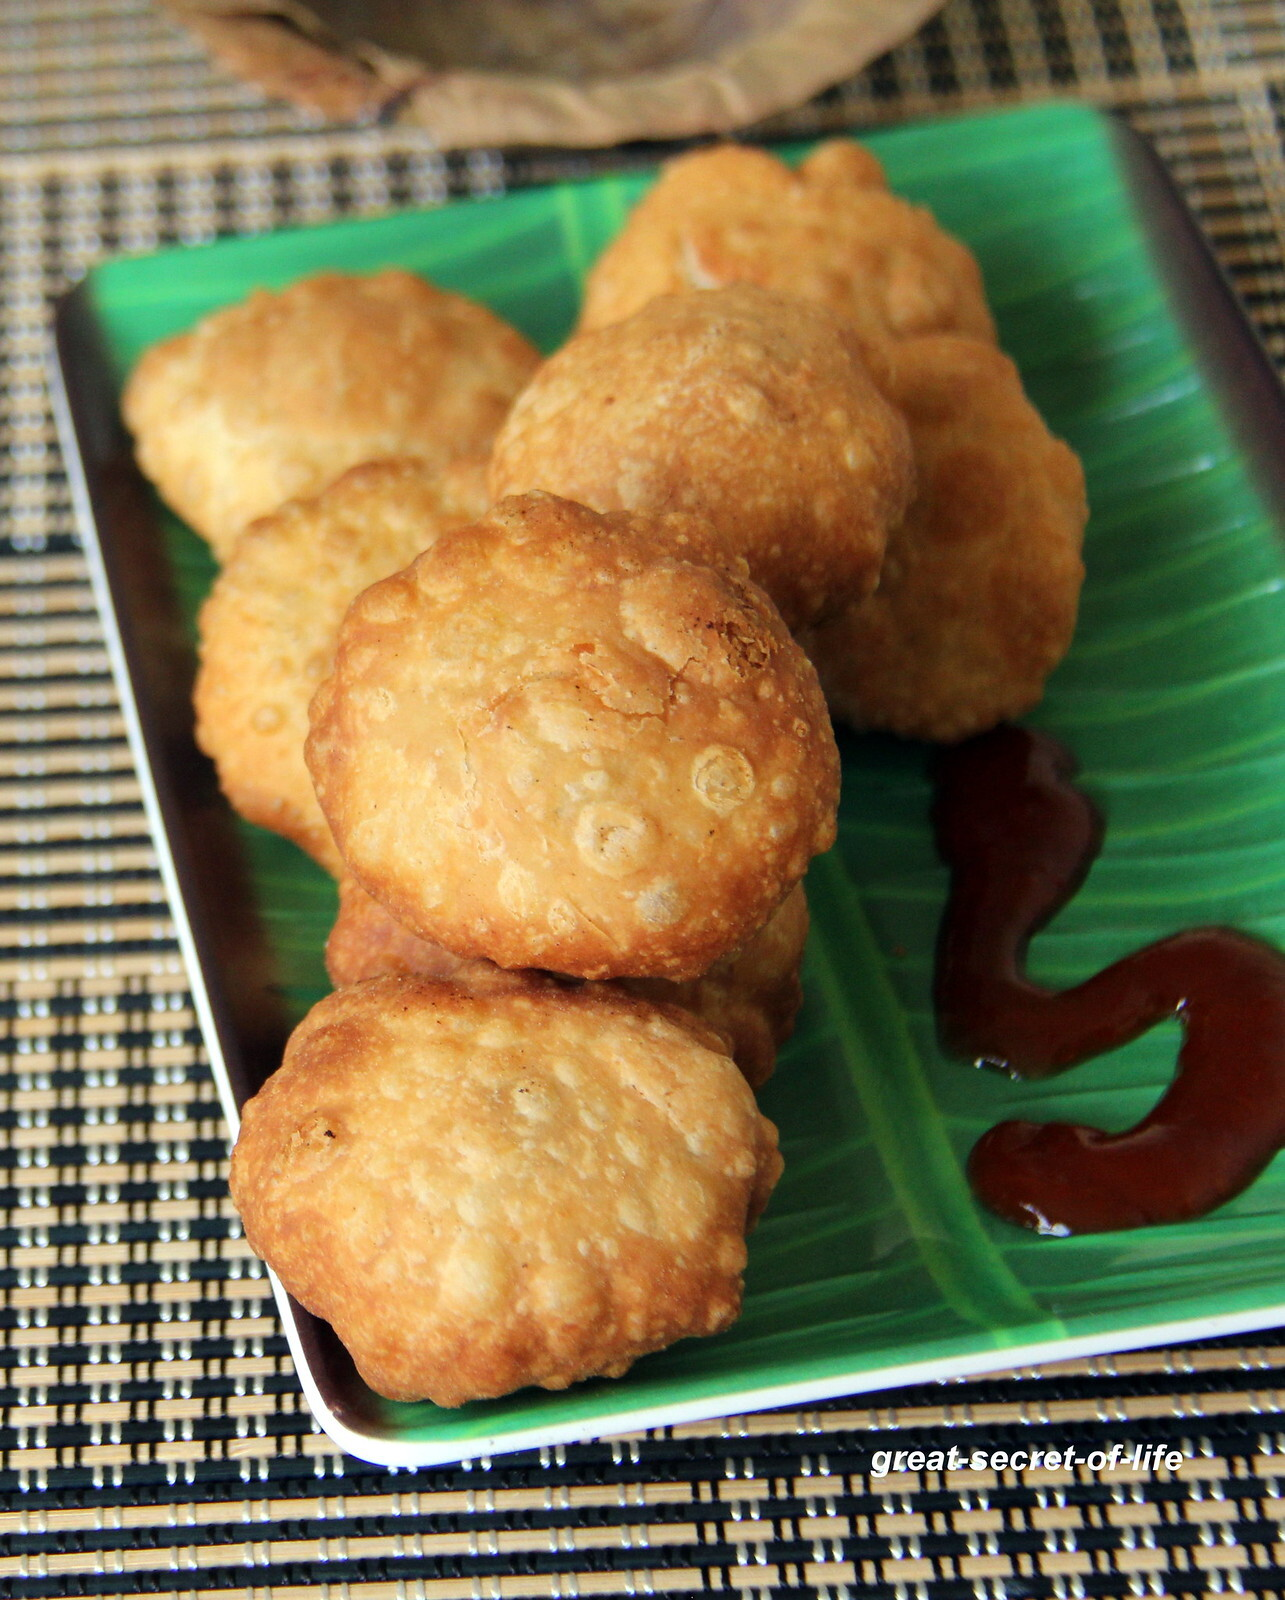 Khasta Kachori recipe - Moong dhal Kachori - Simple kids snack